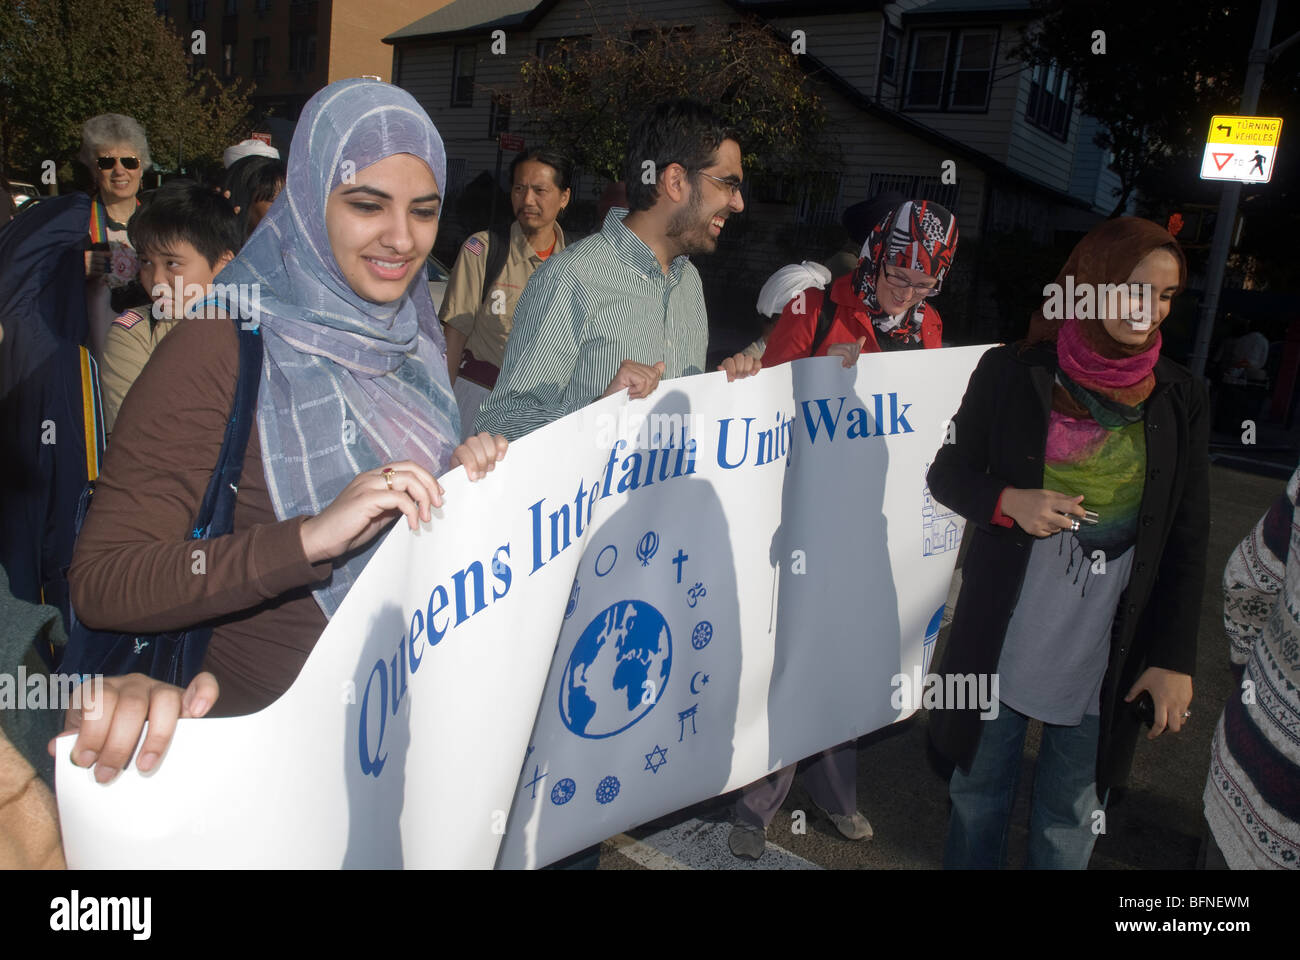 Members of religious congregations in Flushing, Queens in New York during the Queens Interfaith Unity Walk - Stock Image